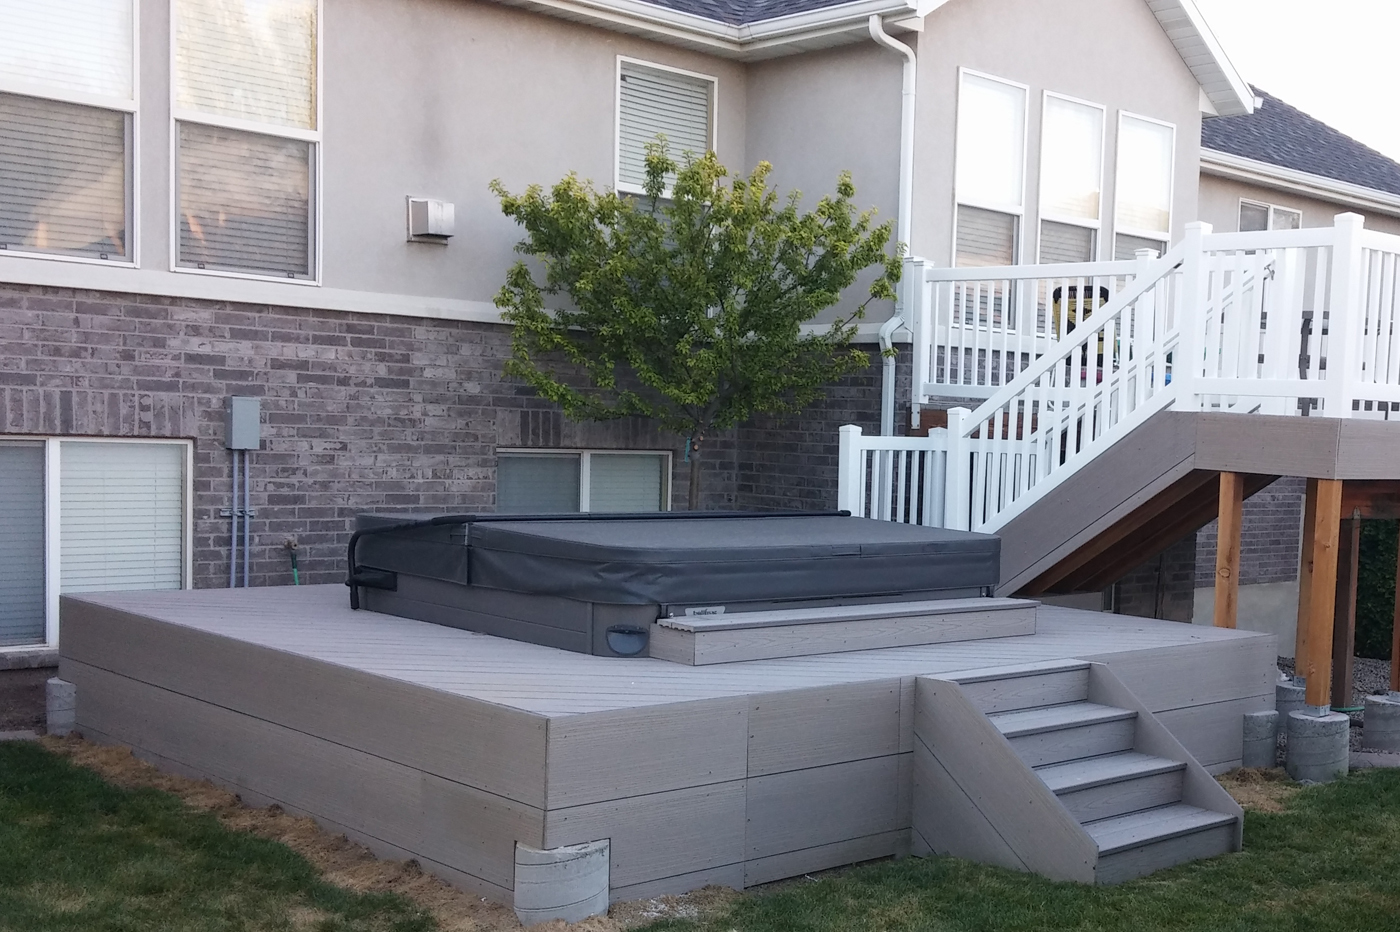 These Smashing Backyard Ideas Are Hot And Happening: Coming Soon: Backyard Paradise For These Kaysville UT